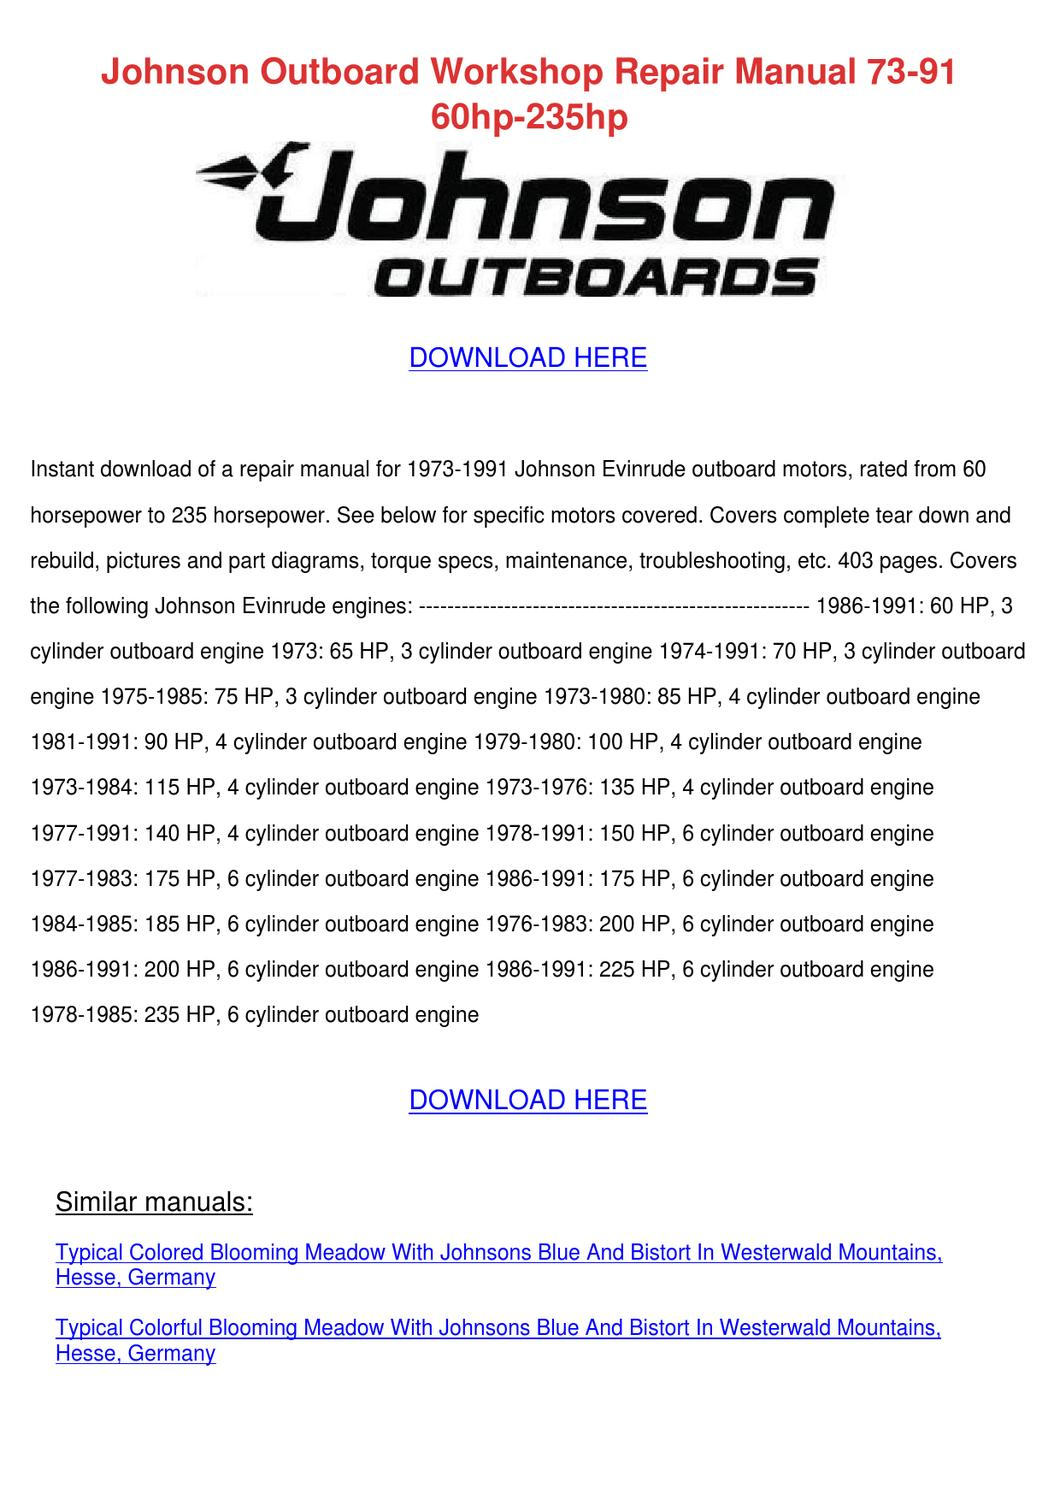 Johnson Outboard Workshop Repair Manual 73 91 by BeckyWeatherford - issuu